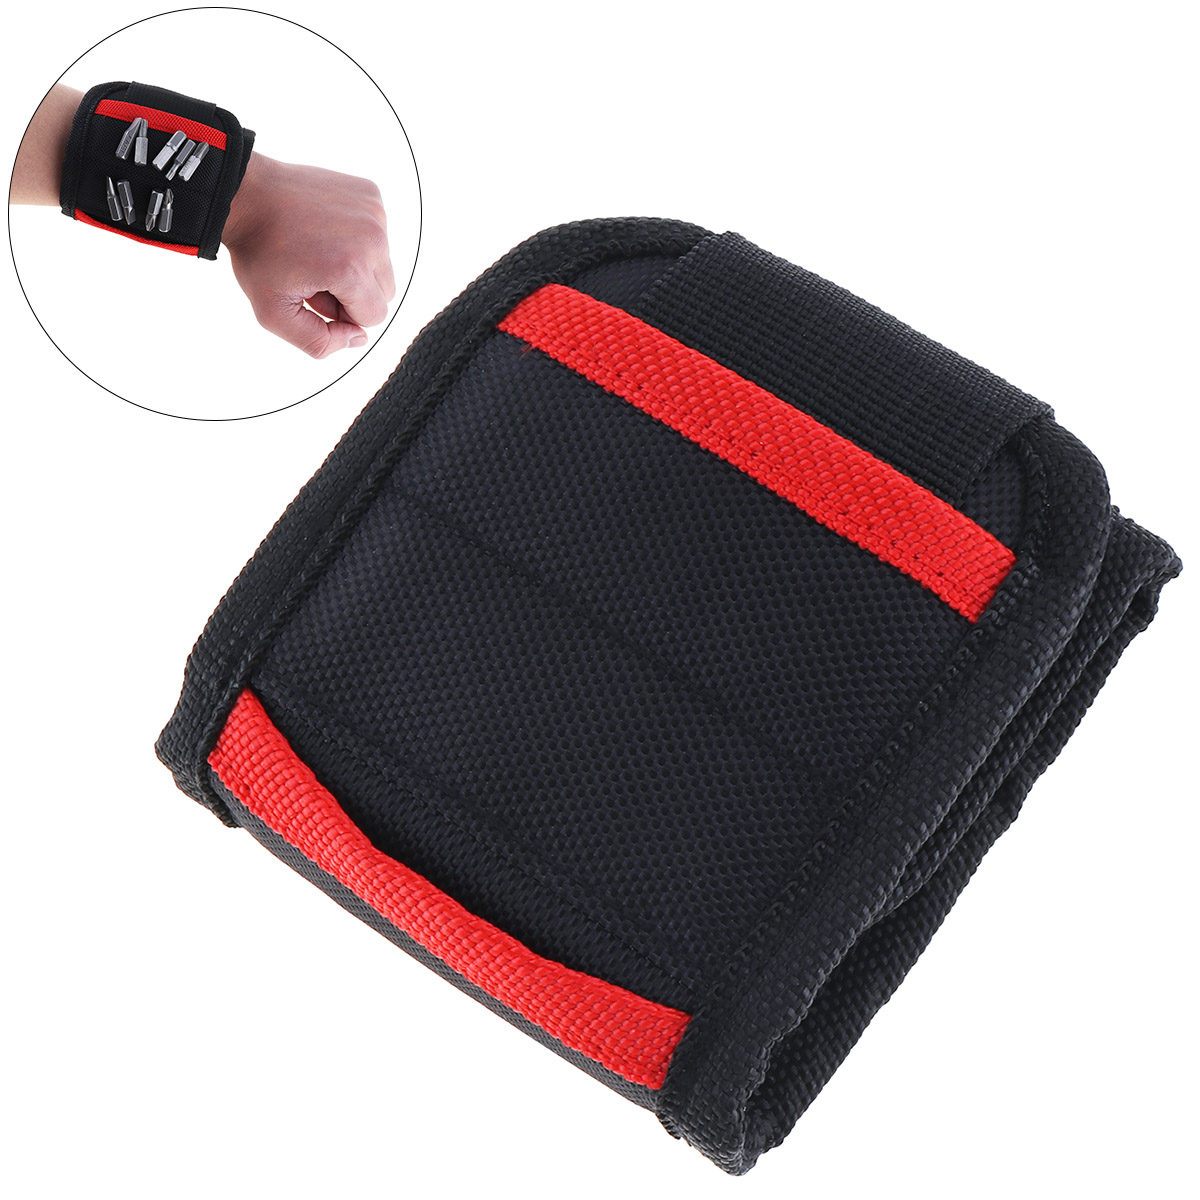 Portable Strong Magnetic Wristband Pocket Wristband Tool Bag Electrician Wrist Repair Tool Belt Screws Nails Drill Bits Holder